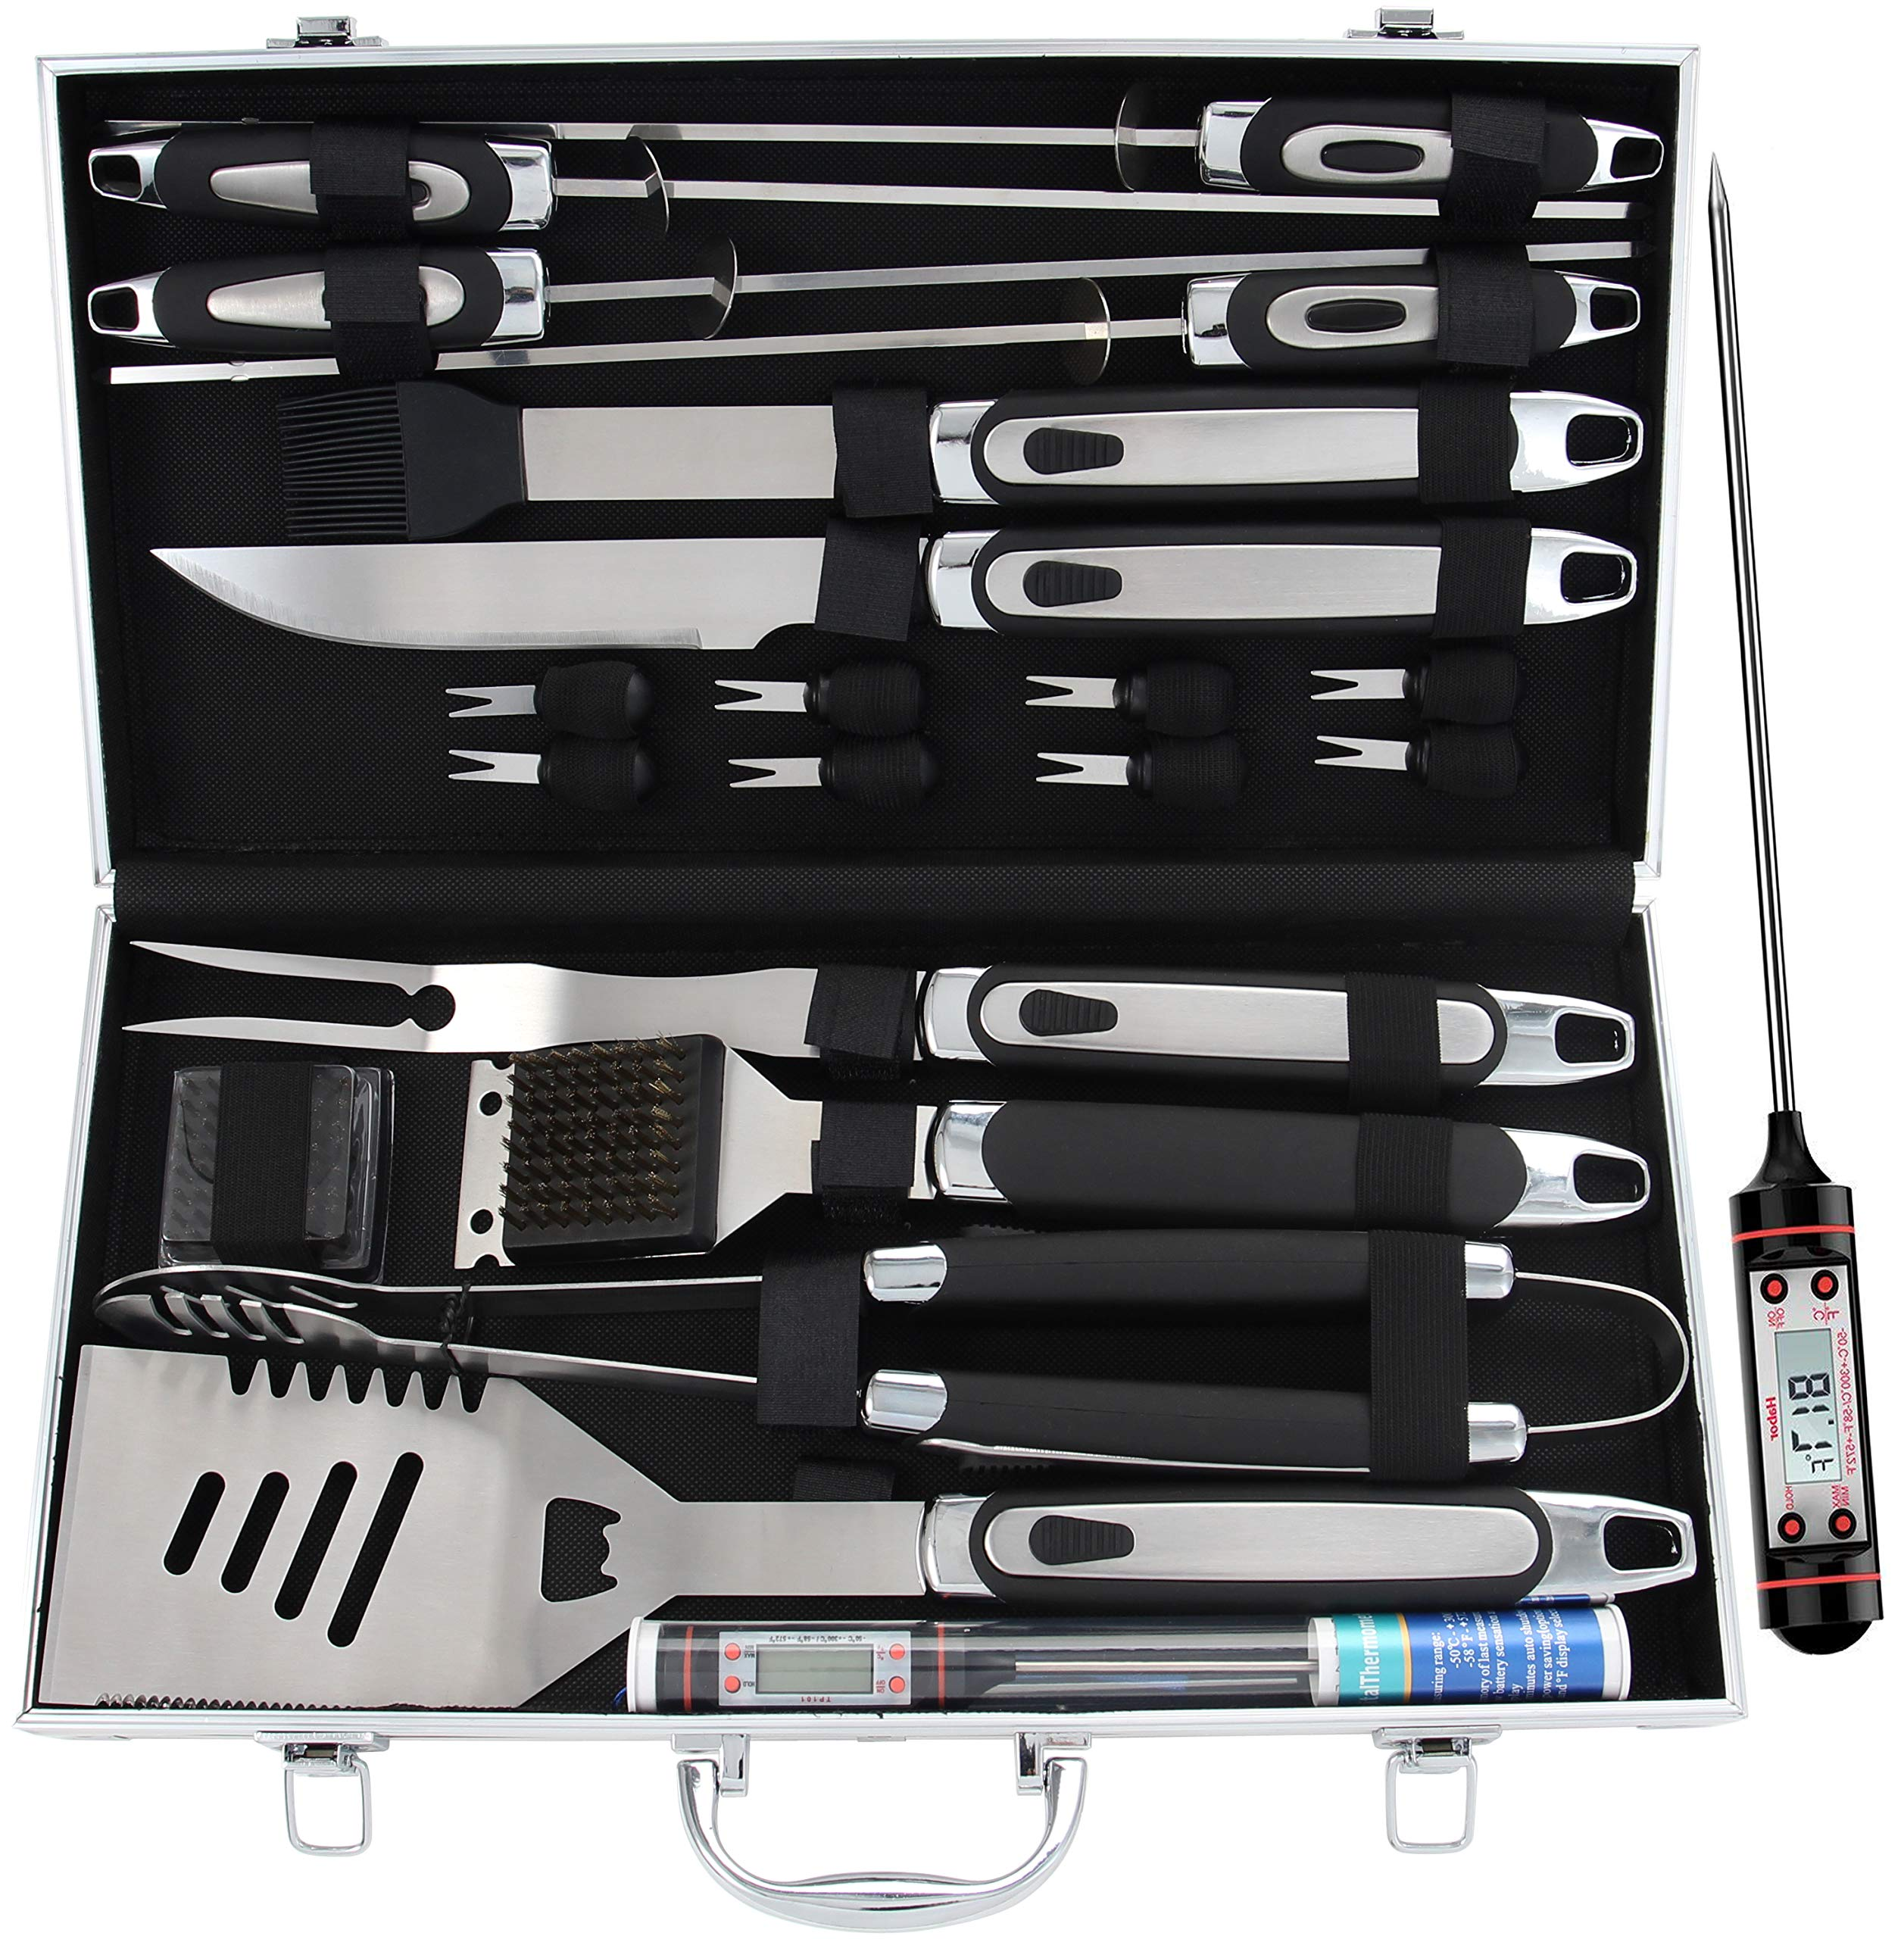 ROMANTICIST 21pc BBQ Grill Accessories Set with Thermometer - Heavy Duty Stainless Steel Barbecue Grilling Utensils with Non-Slip Handle in Aluminum Storage Case for Men Women by ROMANTICIST